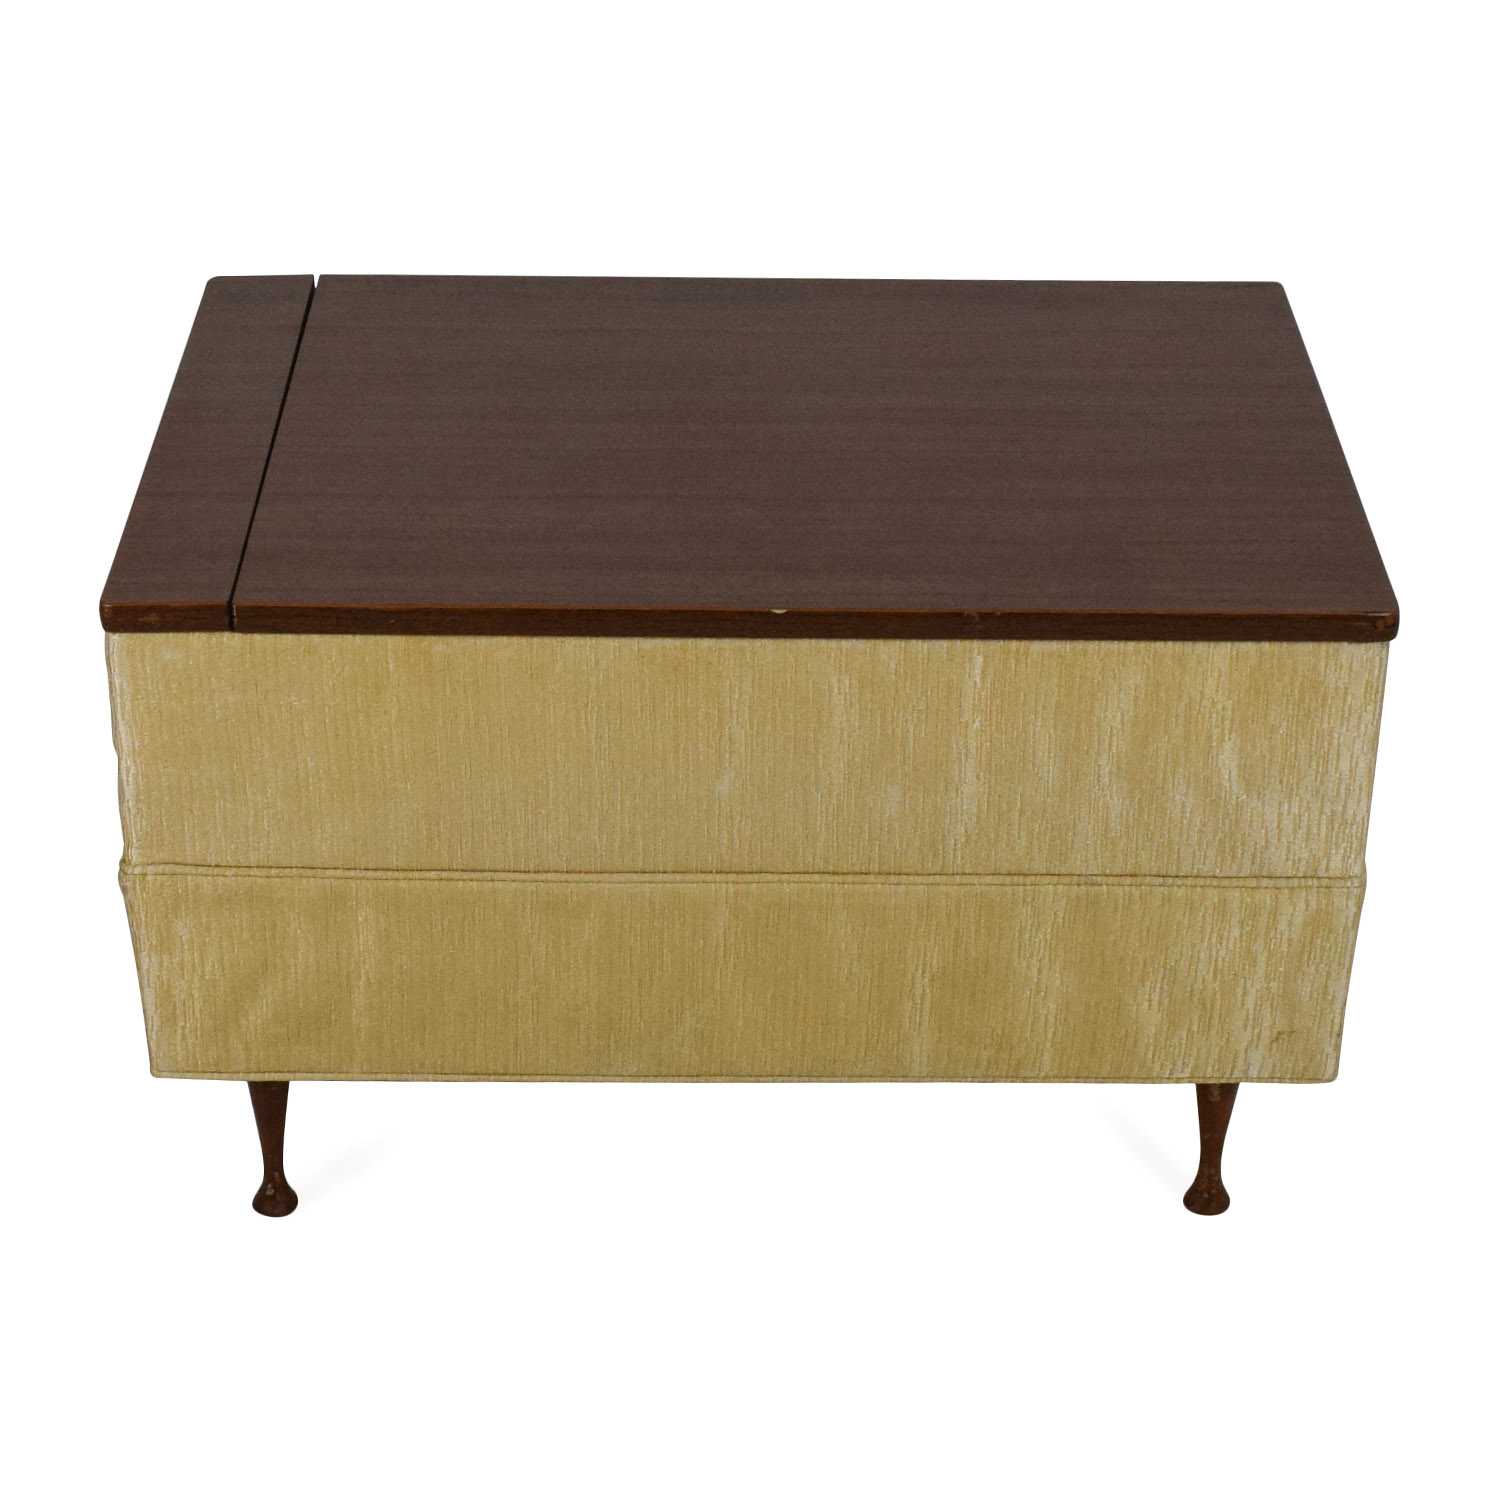 90 Off Vintage Ottoman Coffee Table With Storage Storage